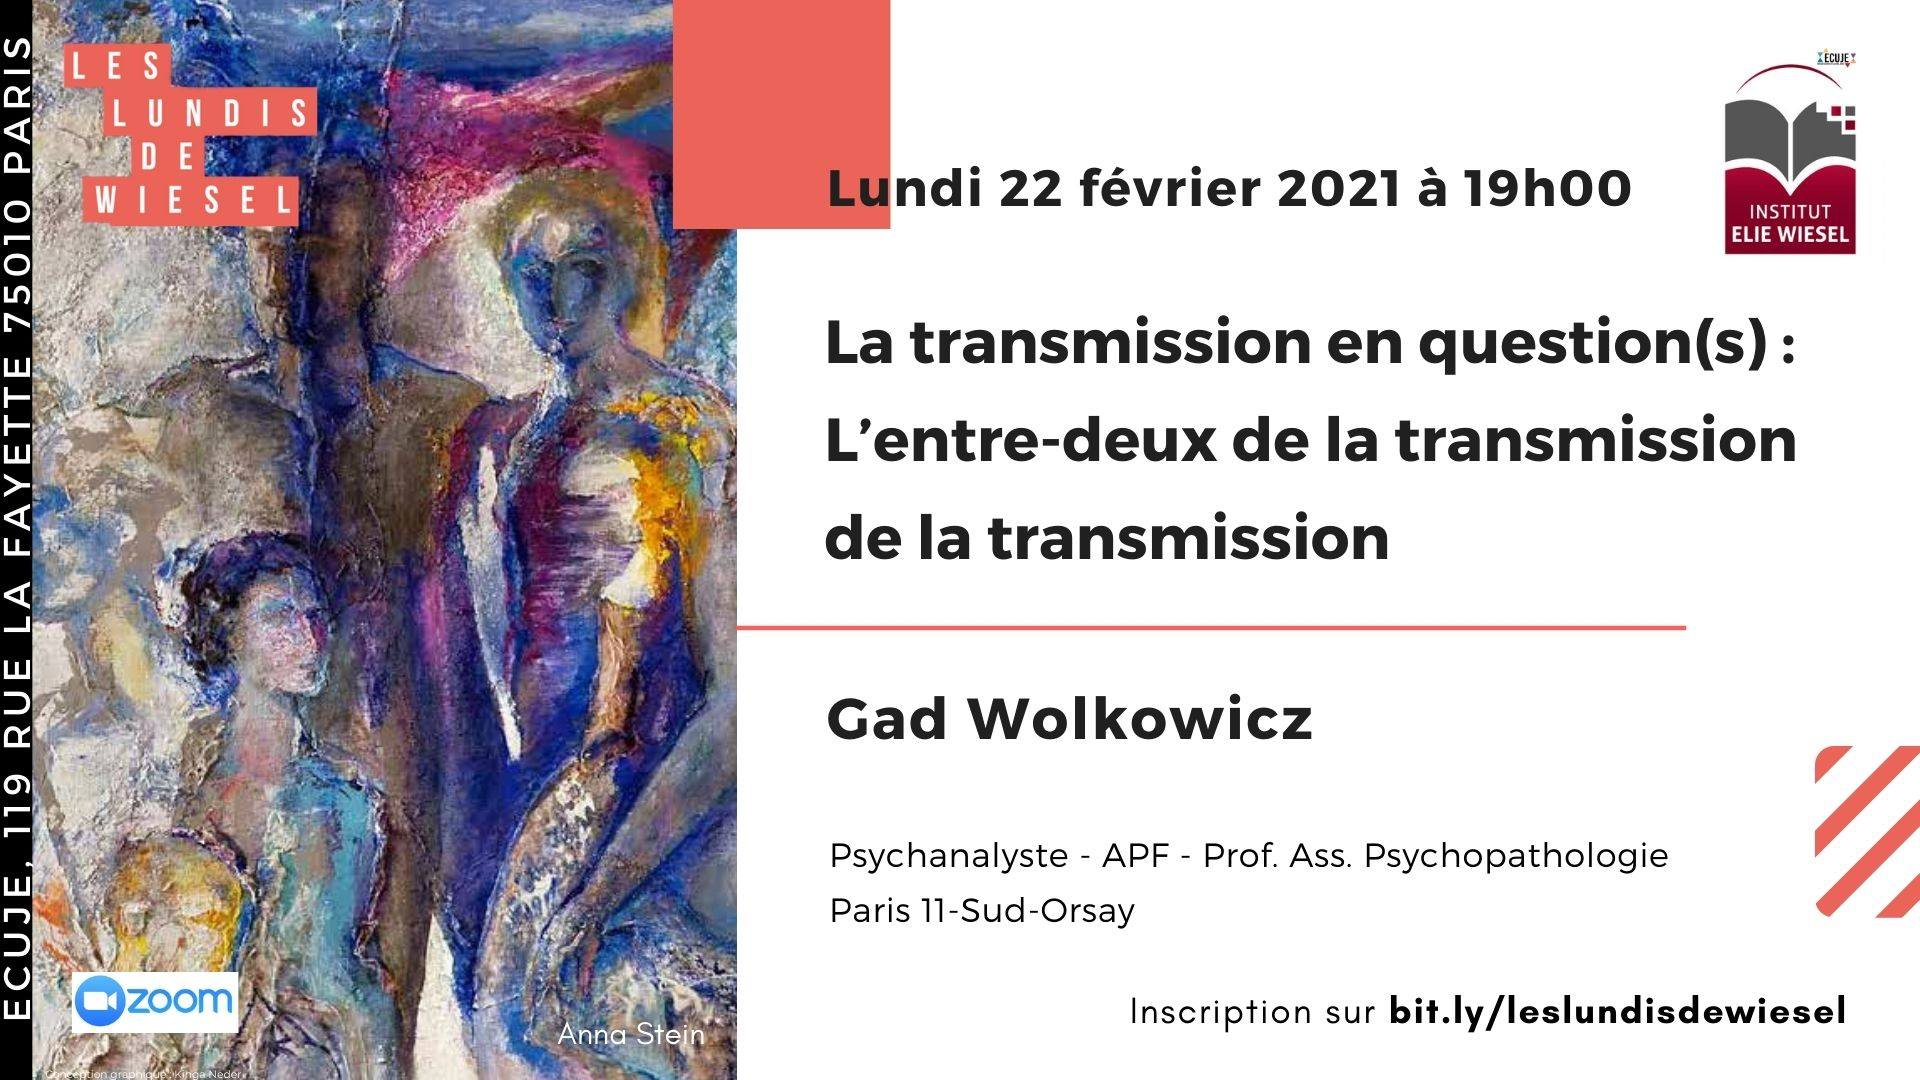 La transmission en question(s): L'entre-deux de la transmission, une construction in(dé)finie, par Gad Wolkowicz